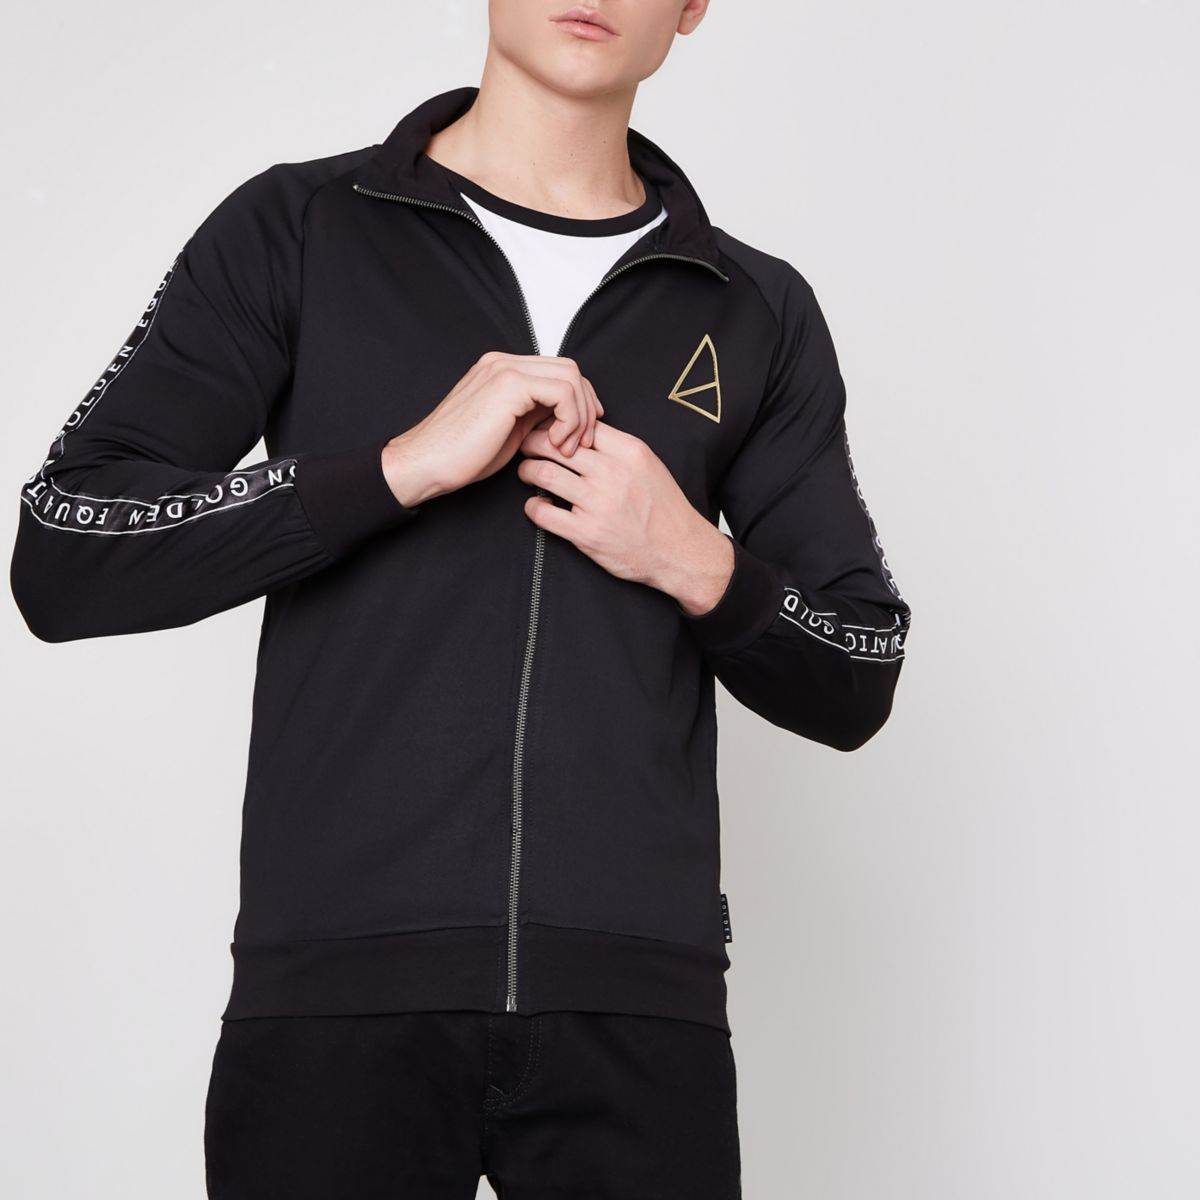 Golden Equation black zip up track top